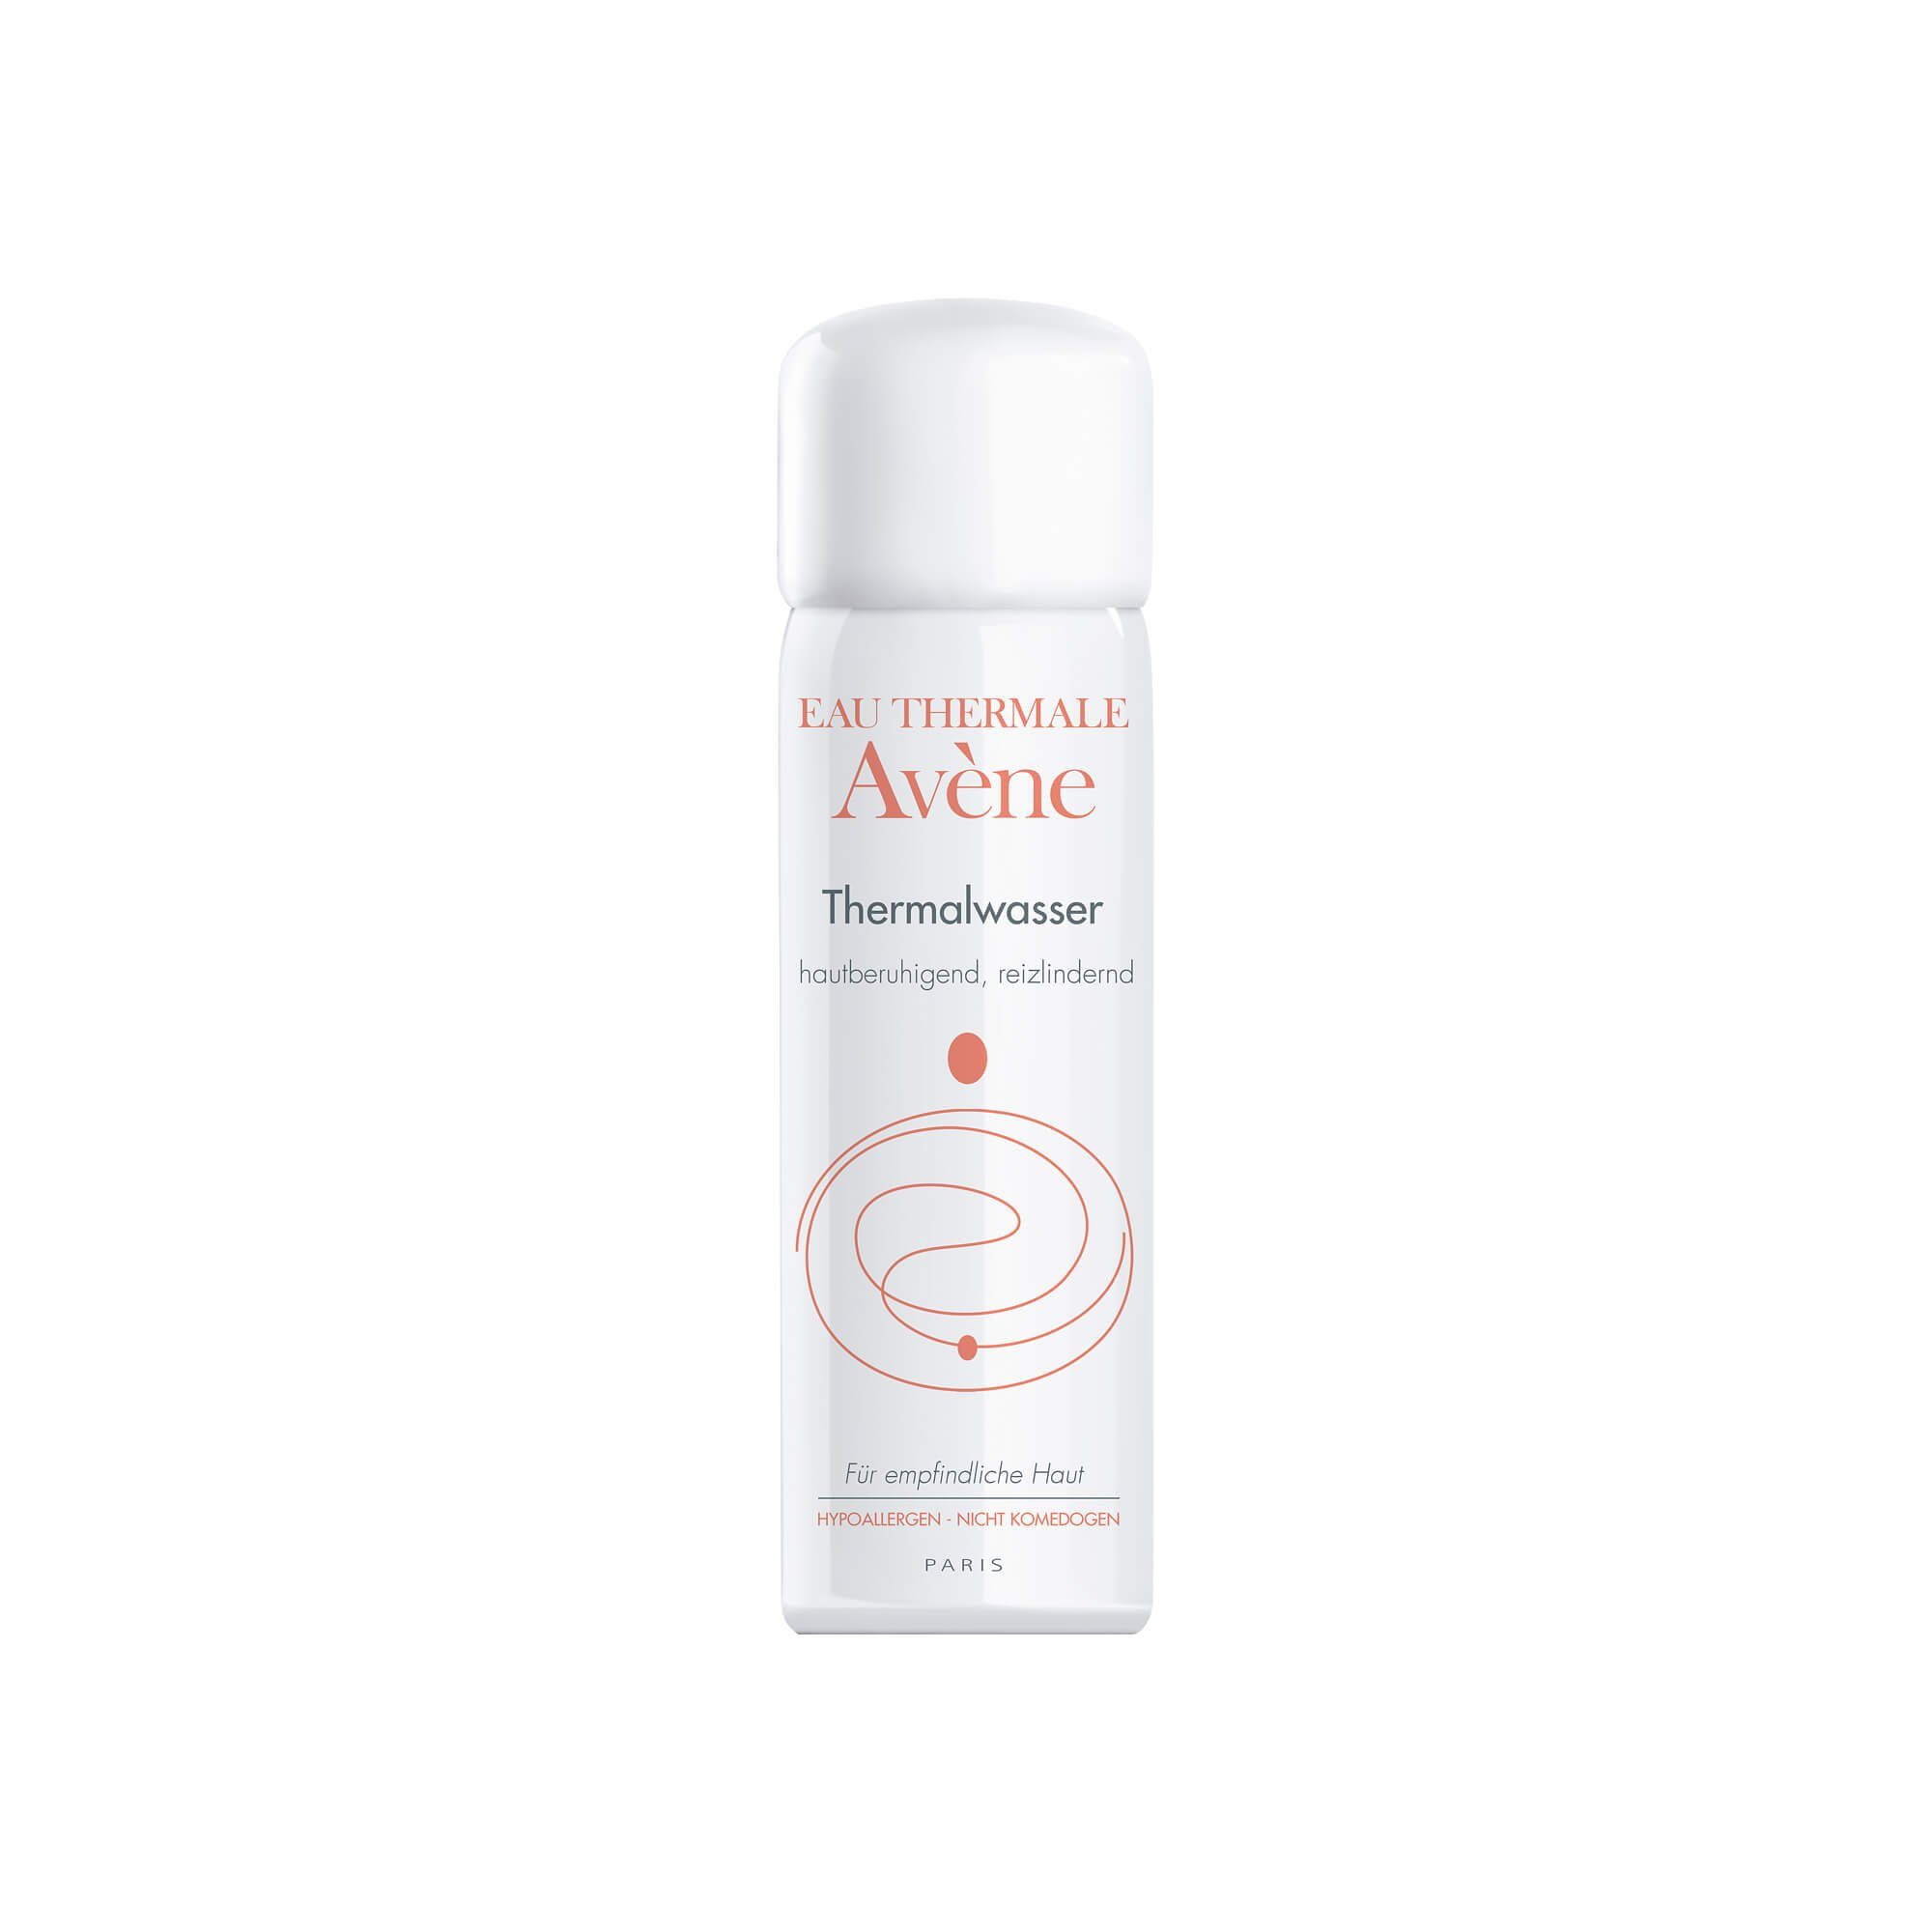 Avene Avene Thermalwasser Spray , 50 ml